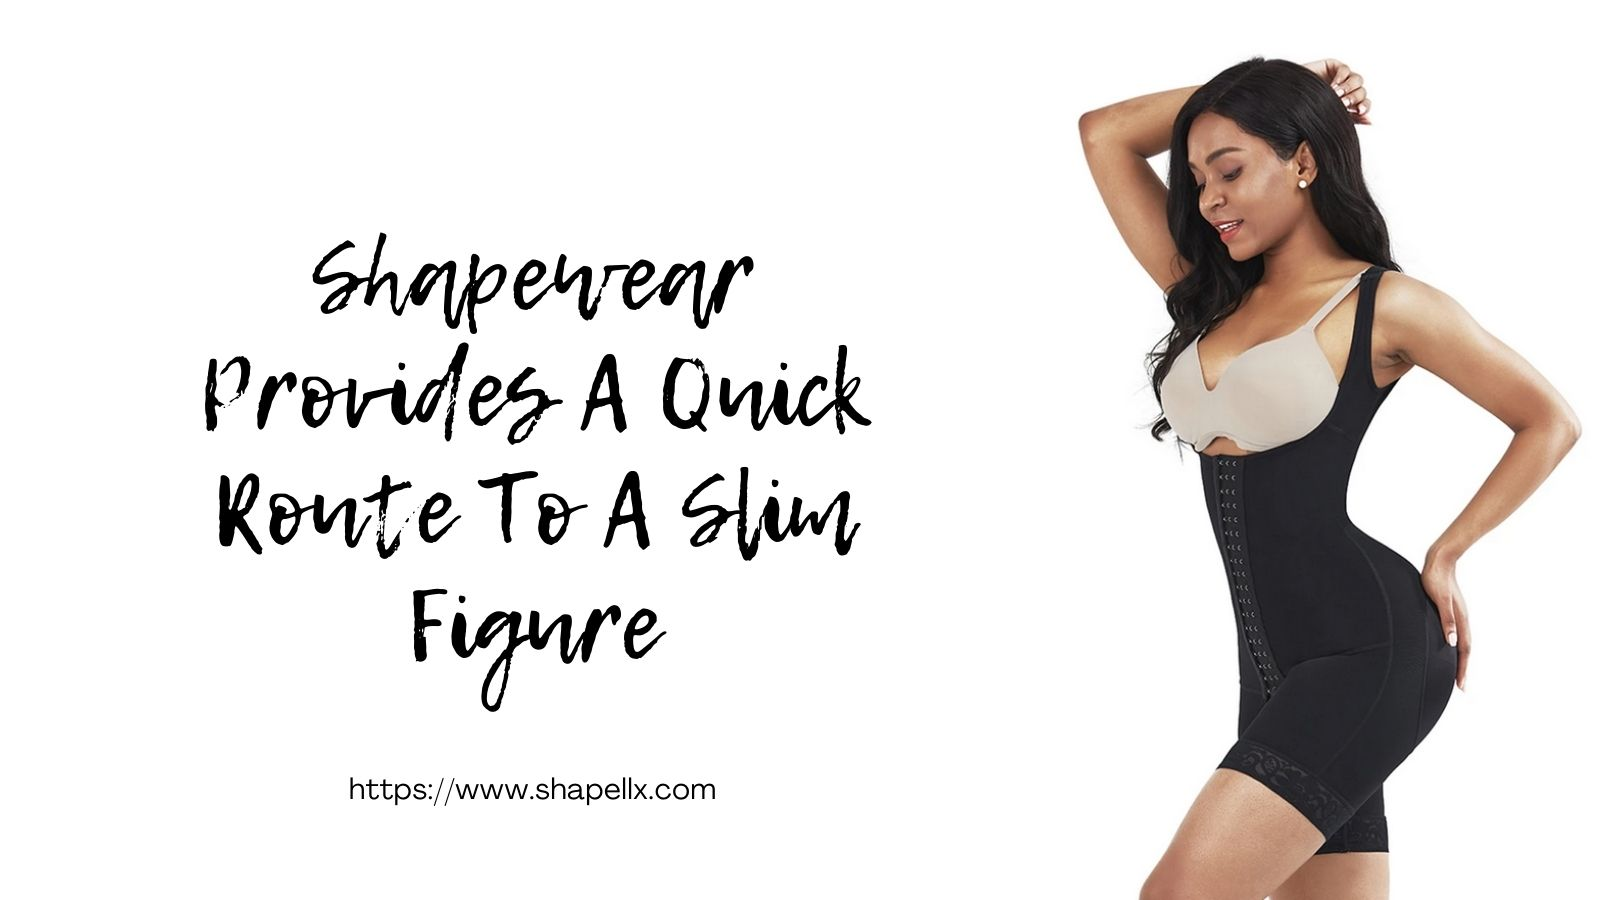 Shapewear Provides A Quick Route To A Slim Figure